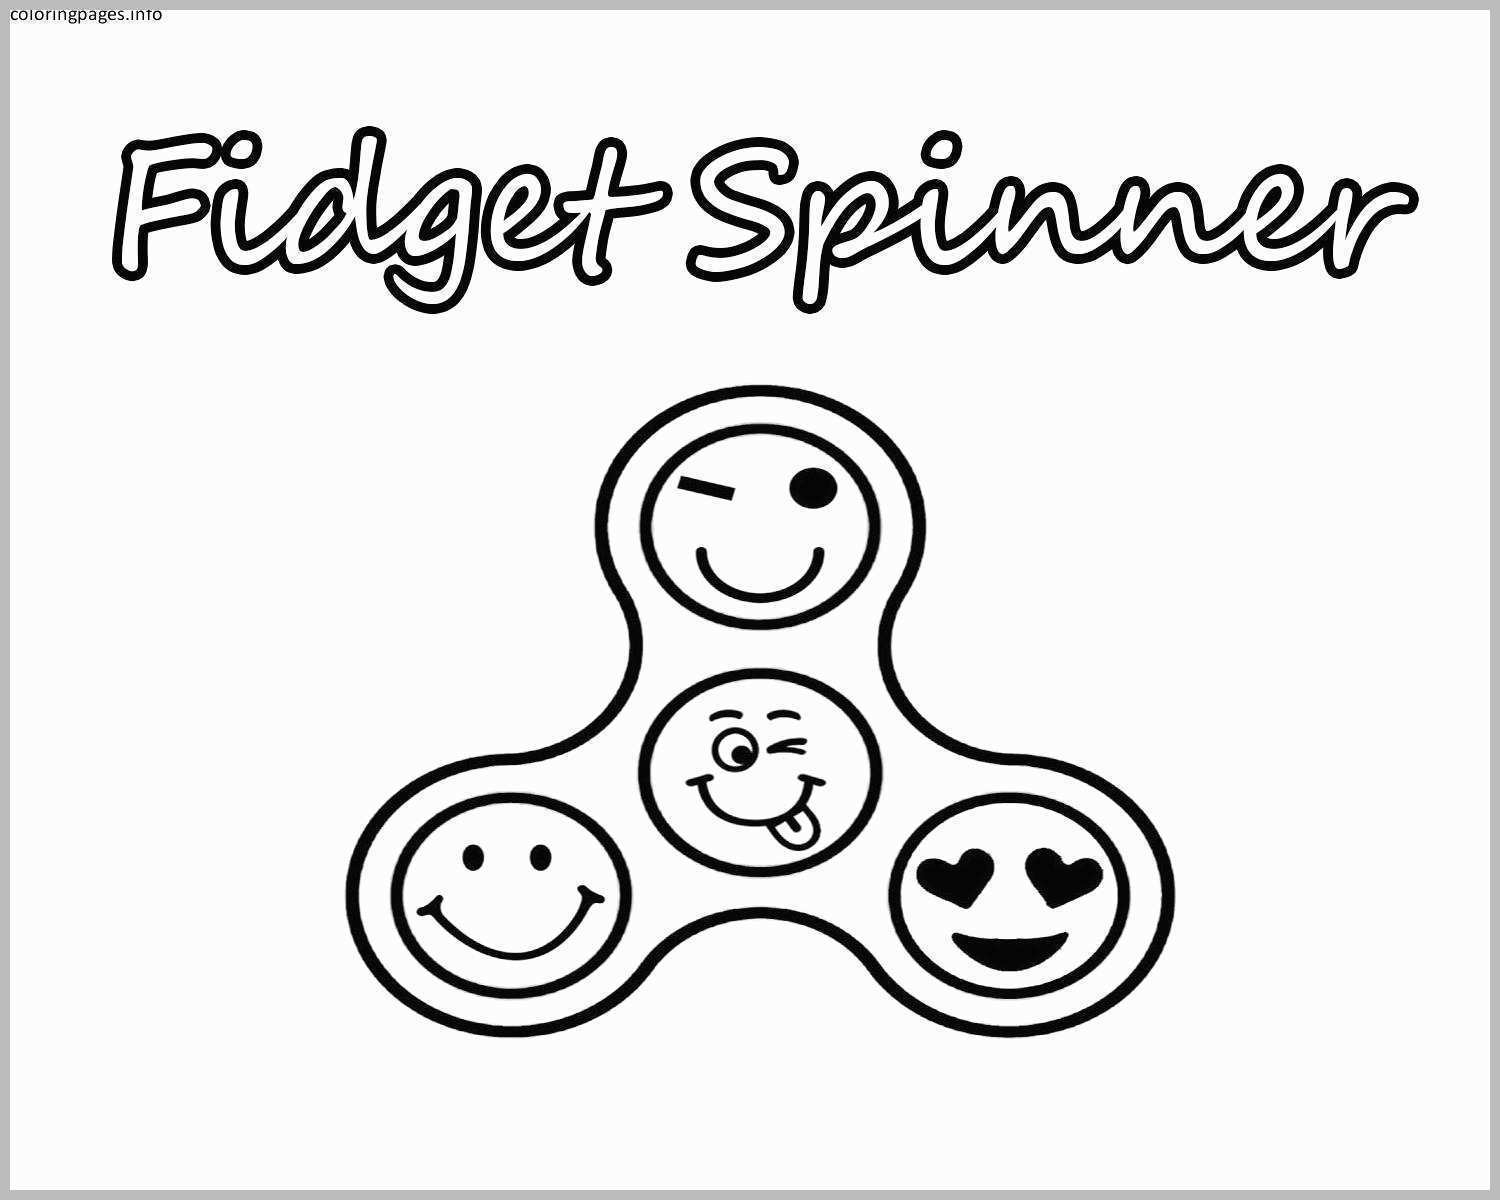 Fidget Spinner Coloring Page Free Printable Fidget Spinner Coloring Pages For Kids With Fidget